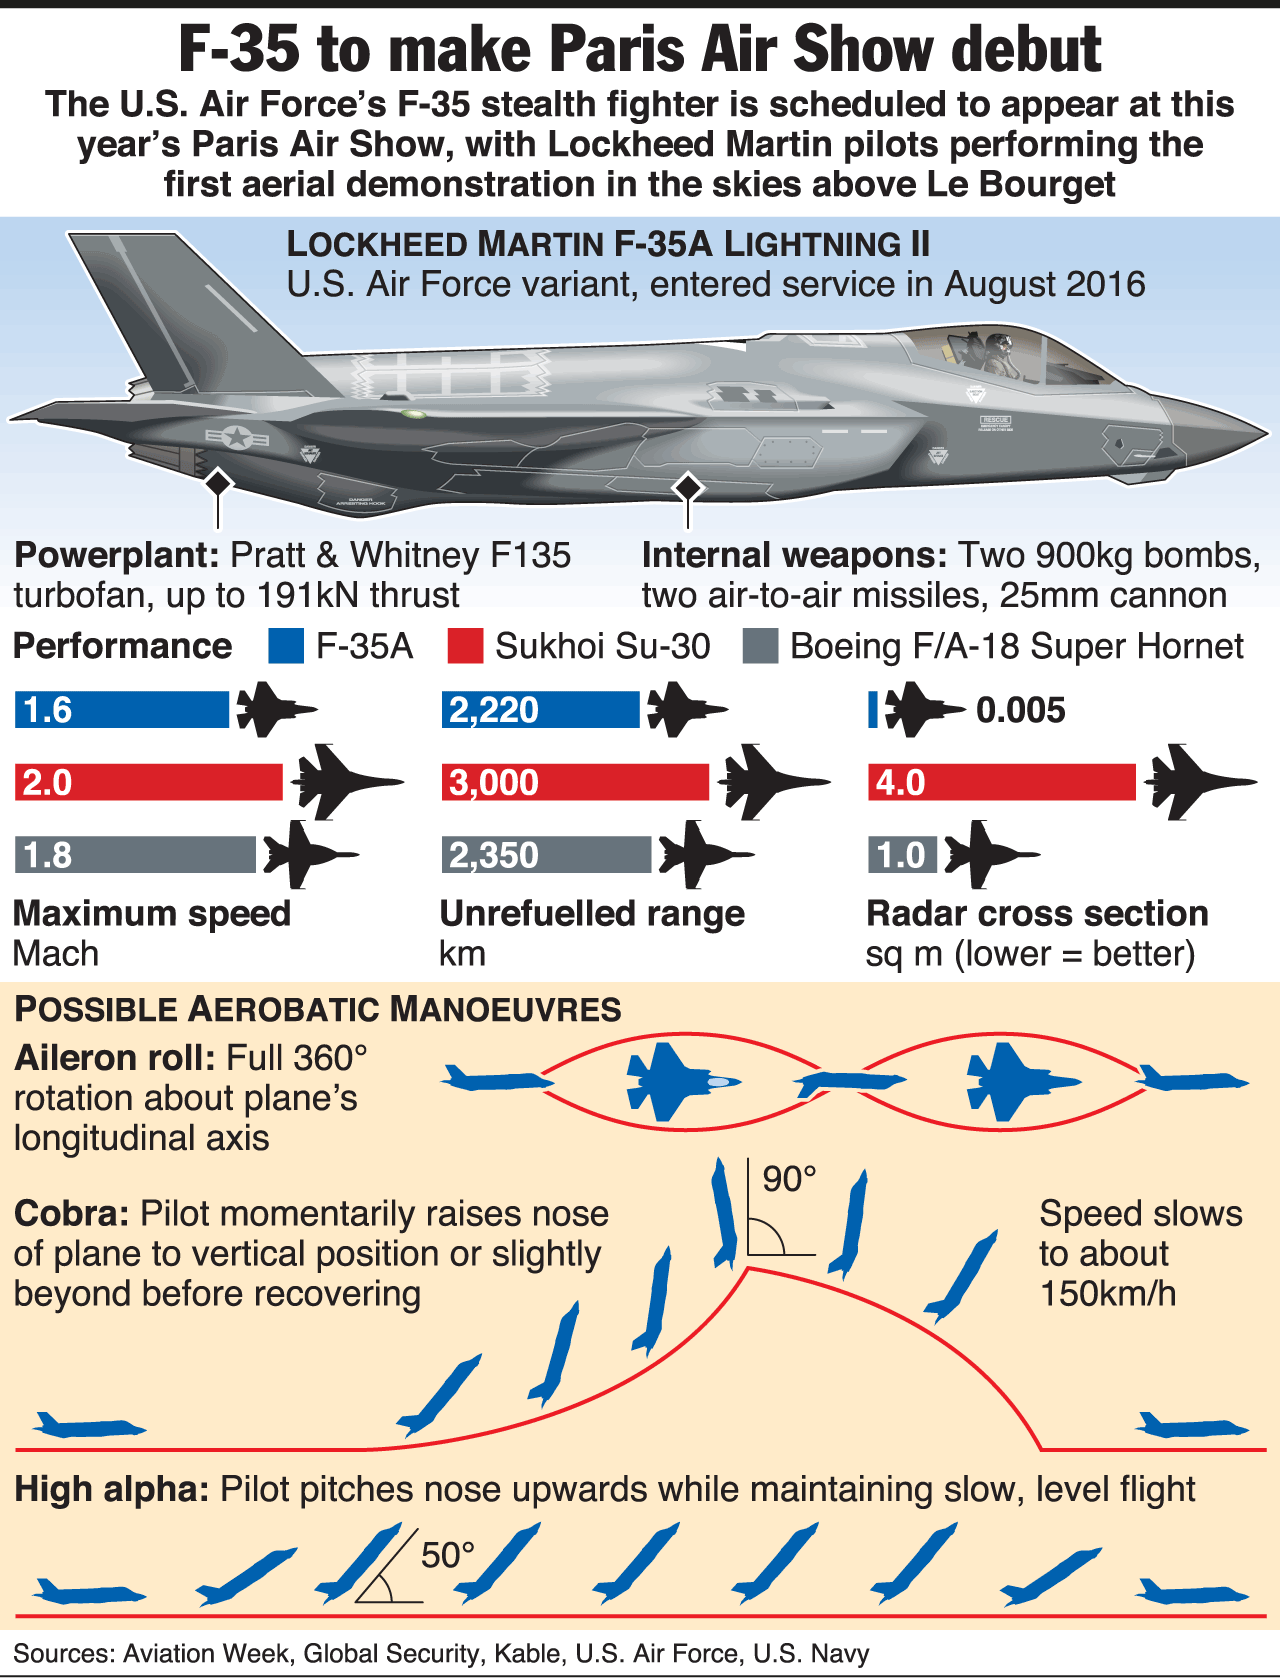 hight resolution of aviation f 35 paris air show debut infographic